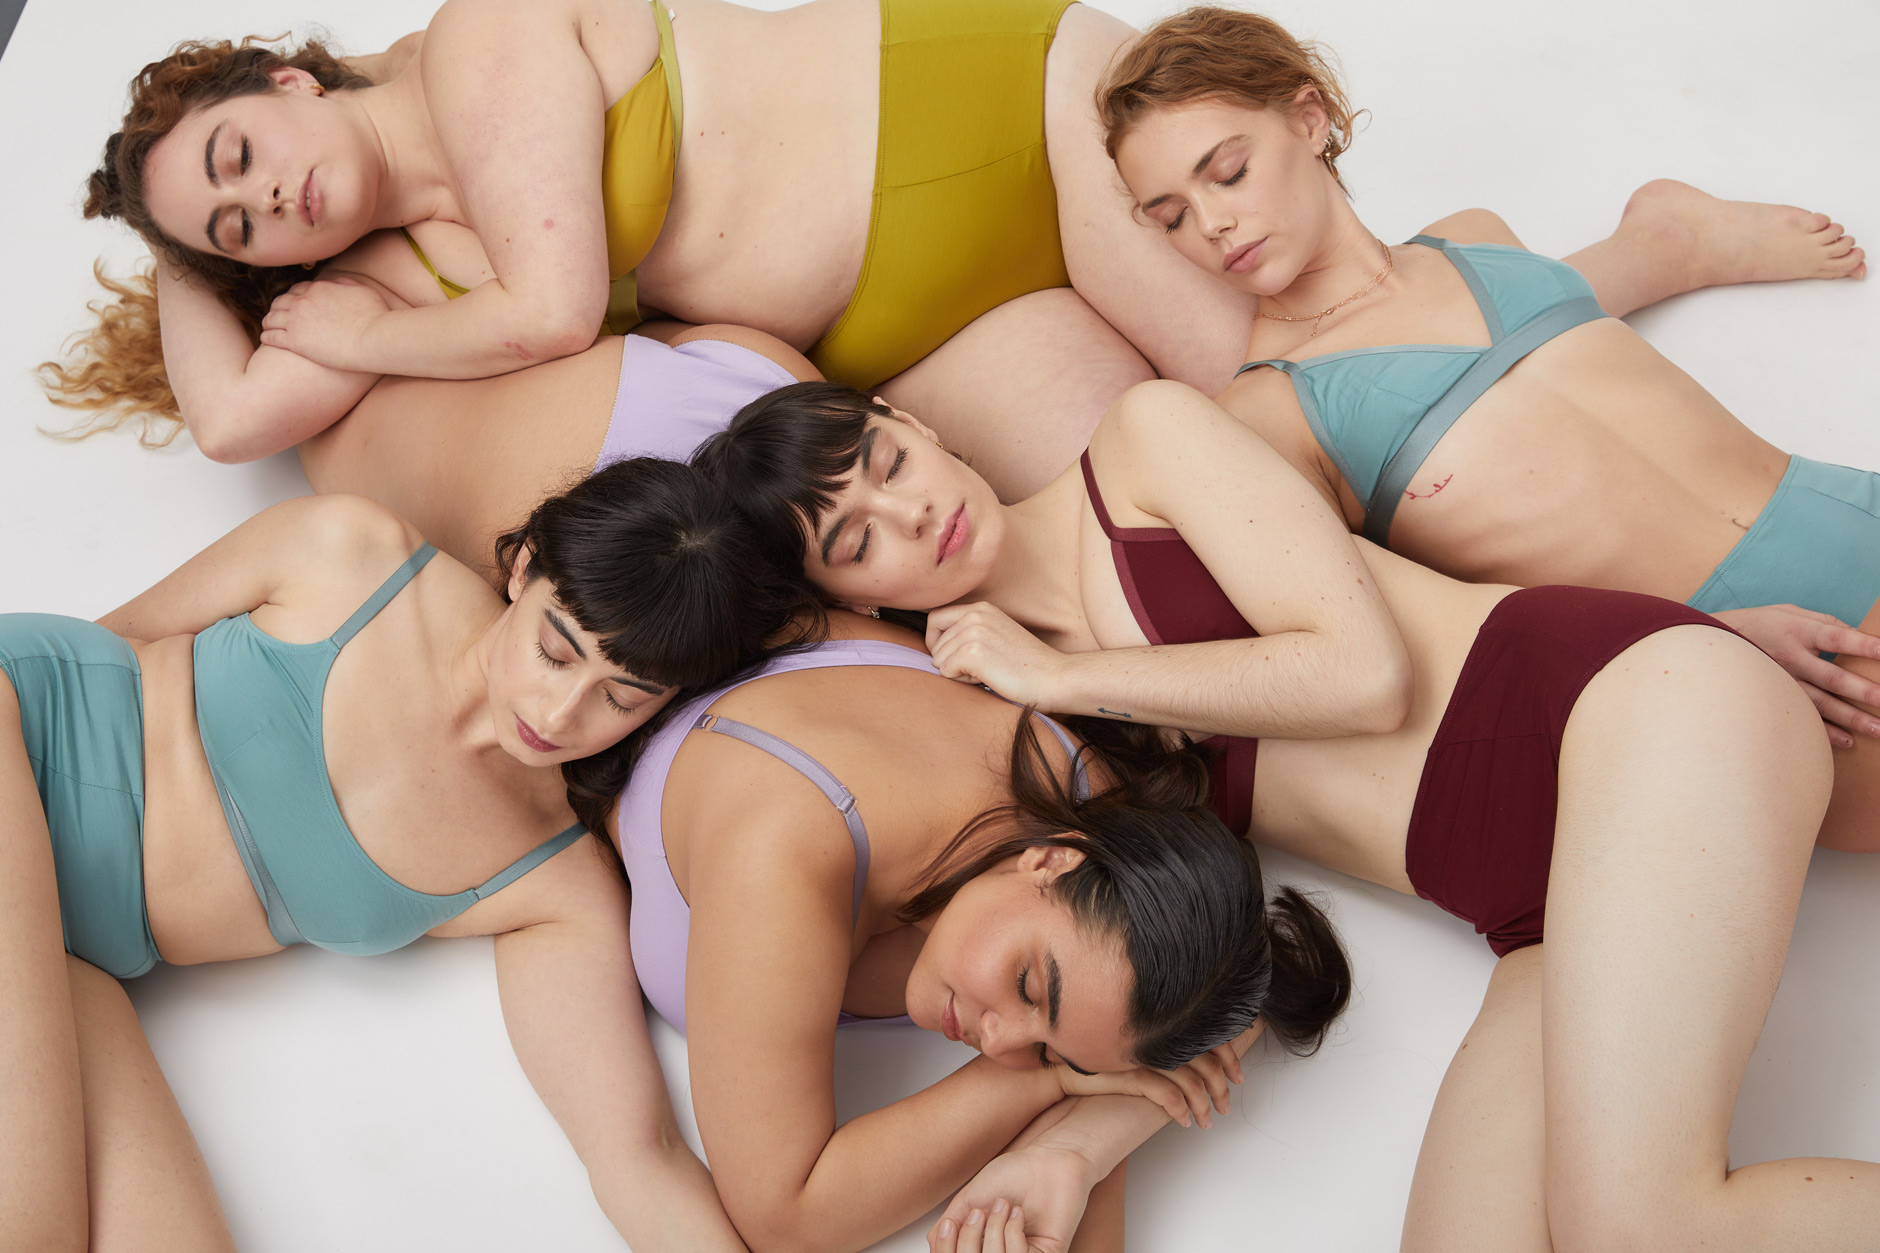 Portrait of 5 real women models in colored underwear and bra laying down for Jonsey